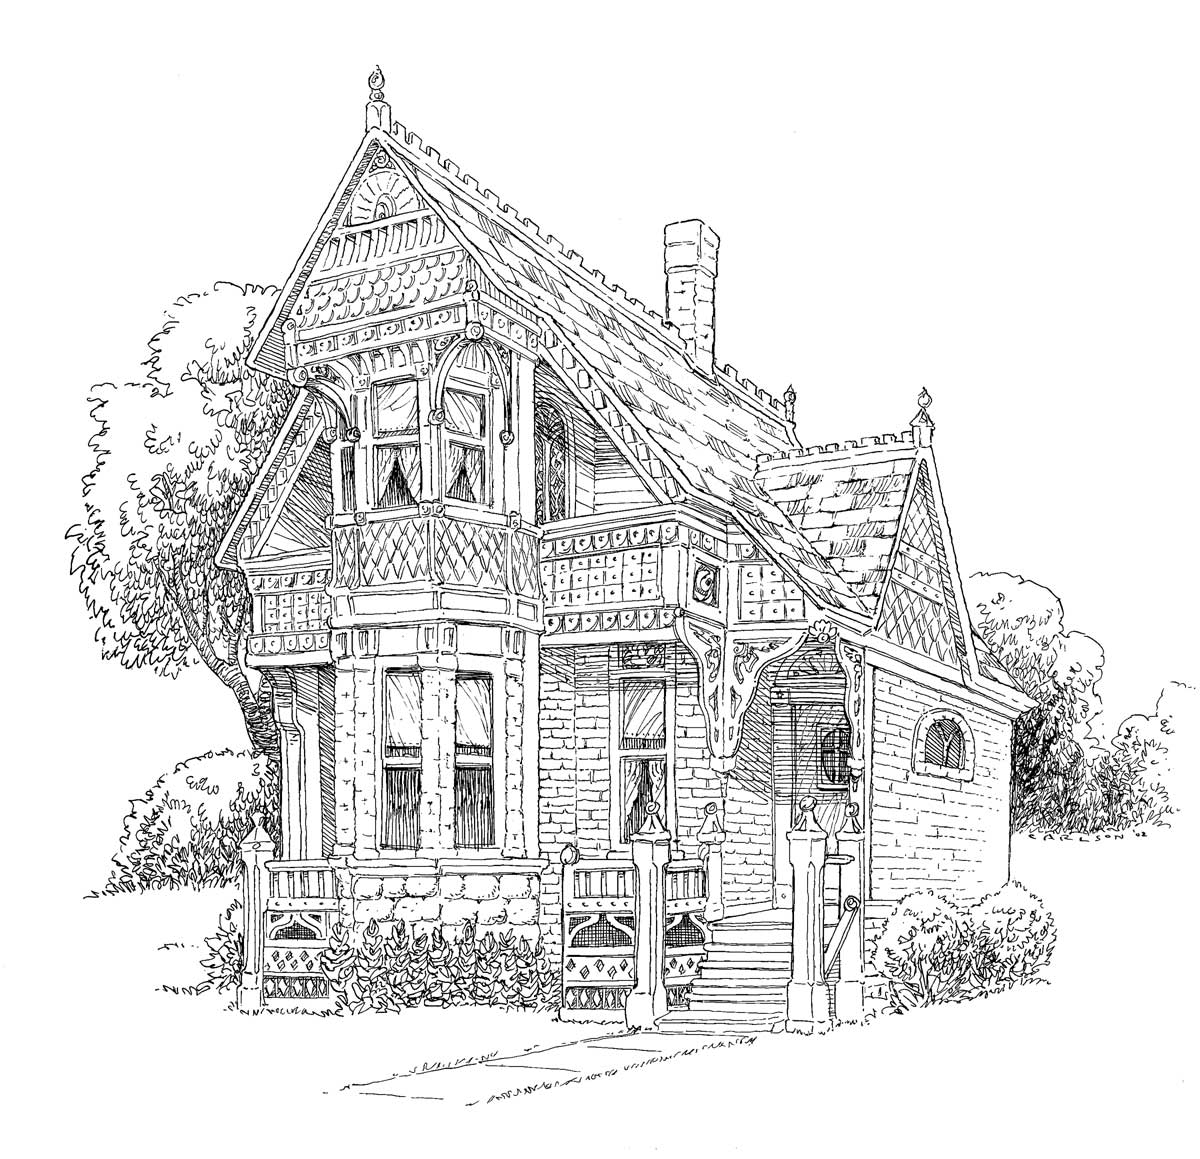 Princess house coloring pages - 100 Free Coloring Pages For Adults And Children Coloring Coloring Pages For Adults And Adult Coloring Pages